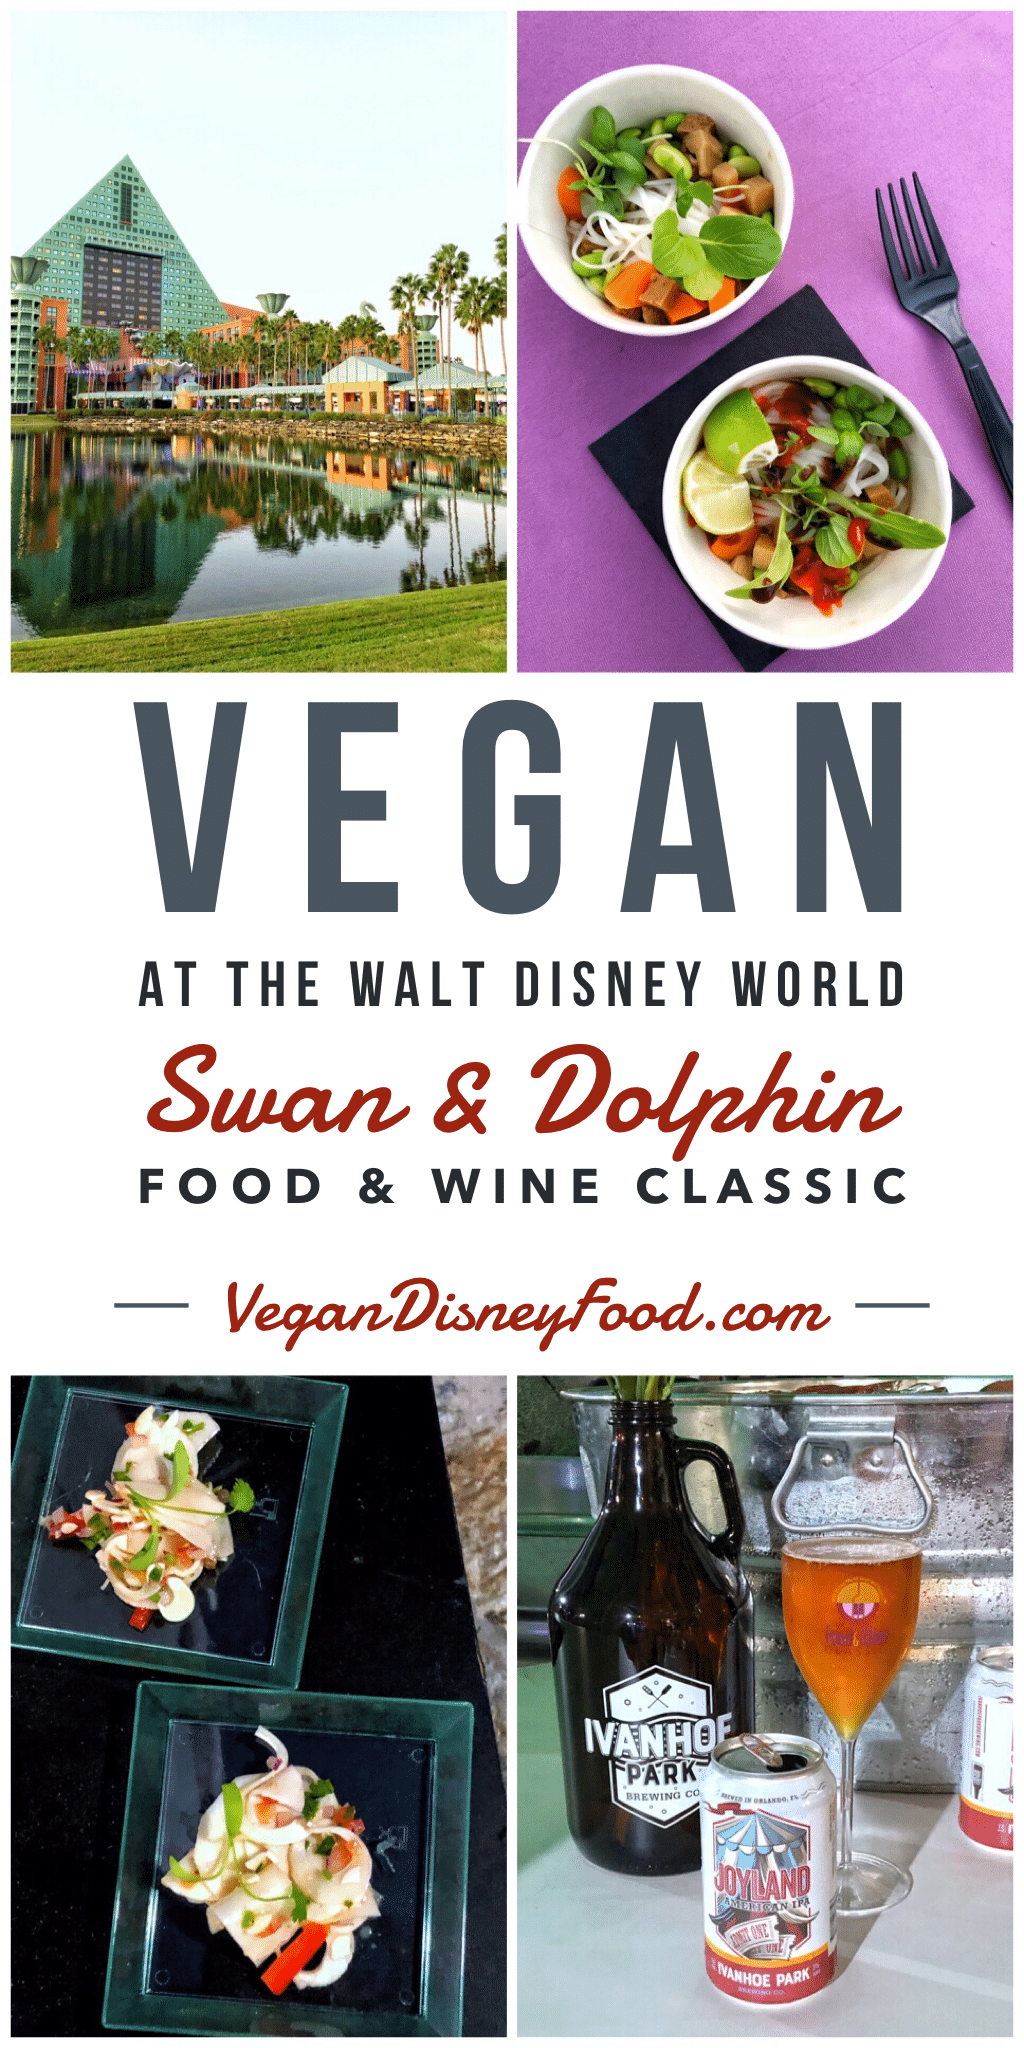 Vegan at the Walt Disney World Swan and Dolphin Food and Wine Classic